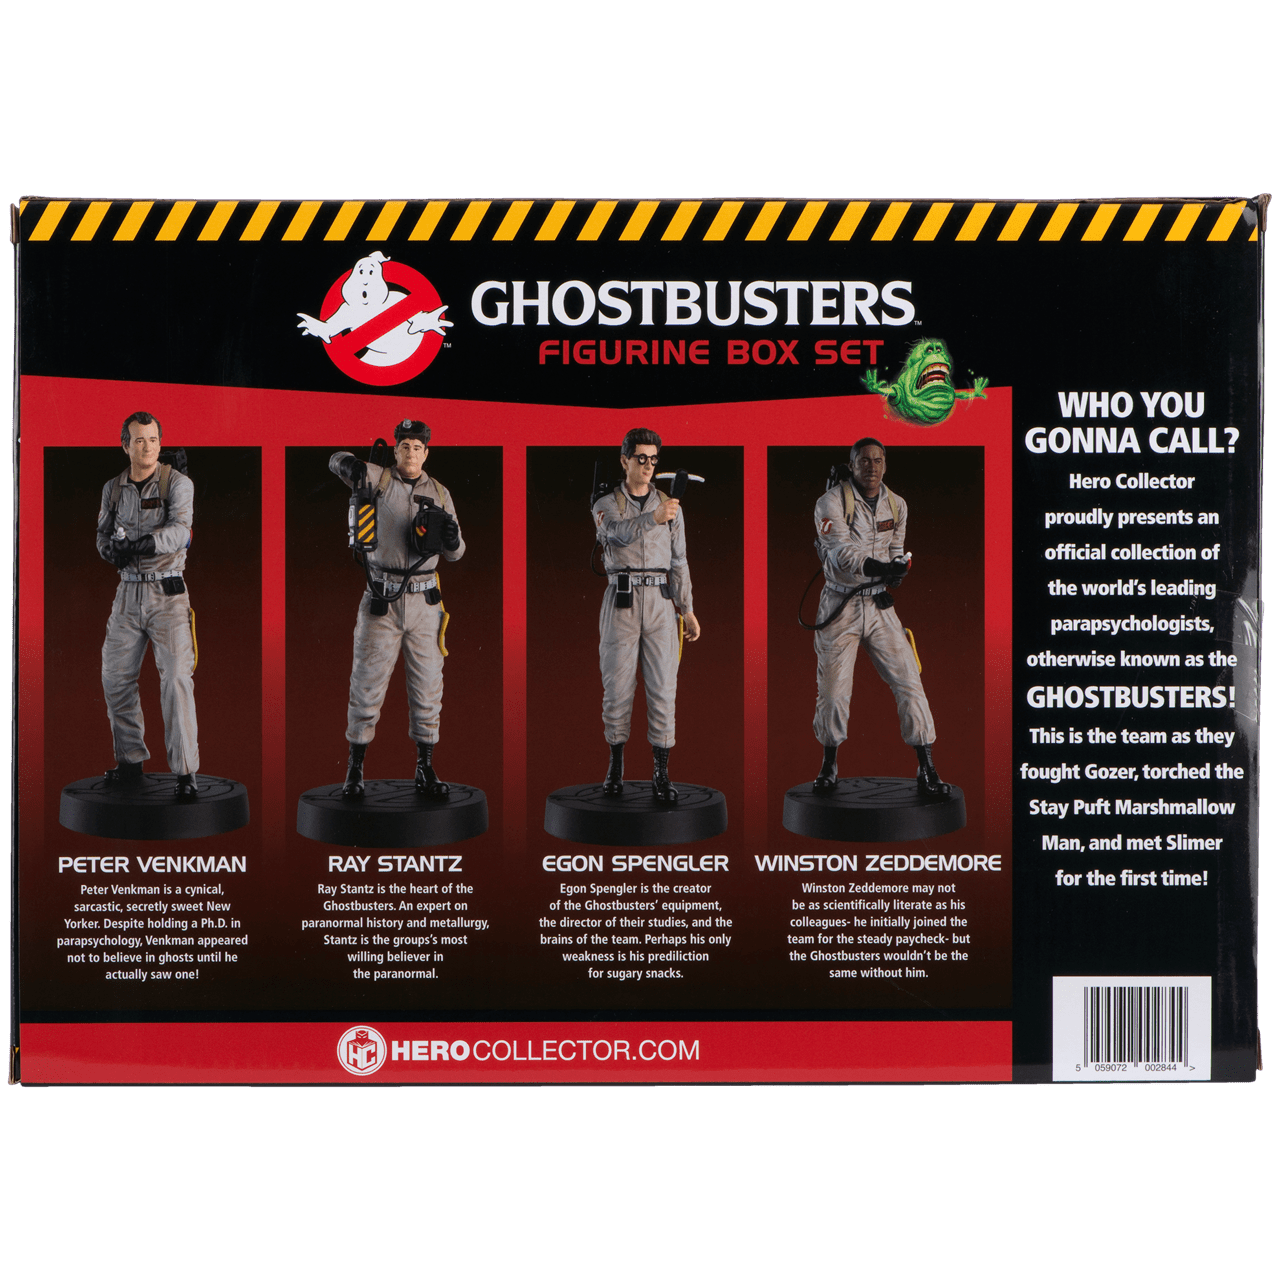 Ghostbusters 4 Figurine Set: Hero Collector - 7